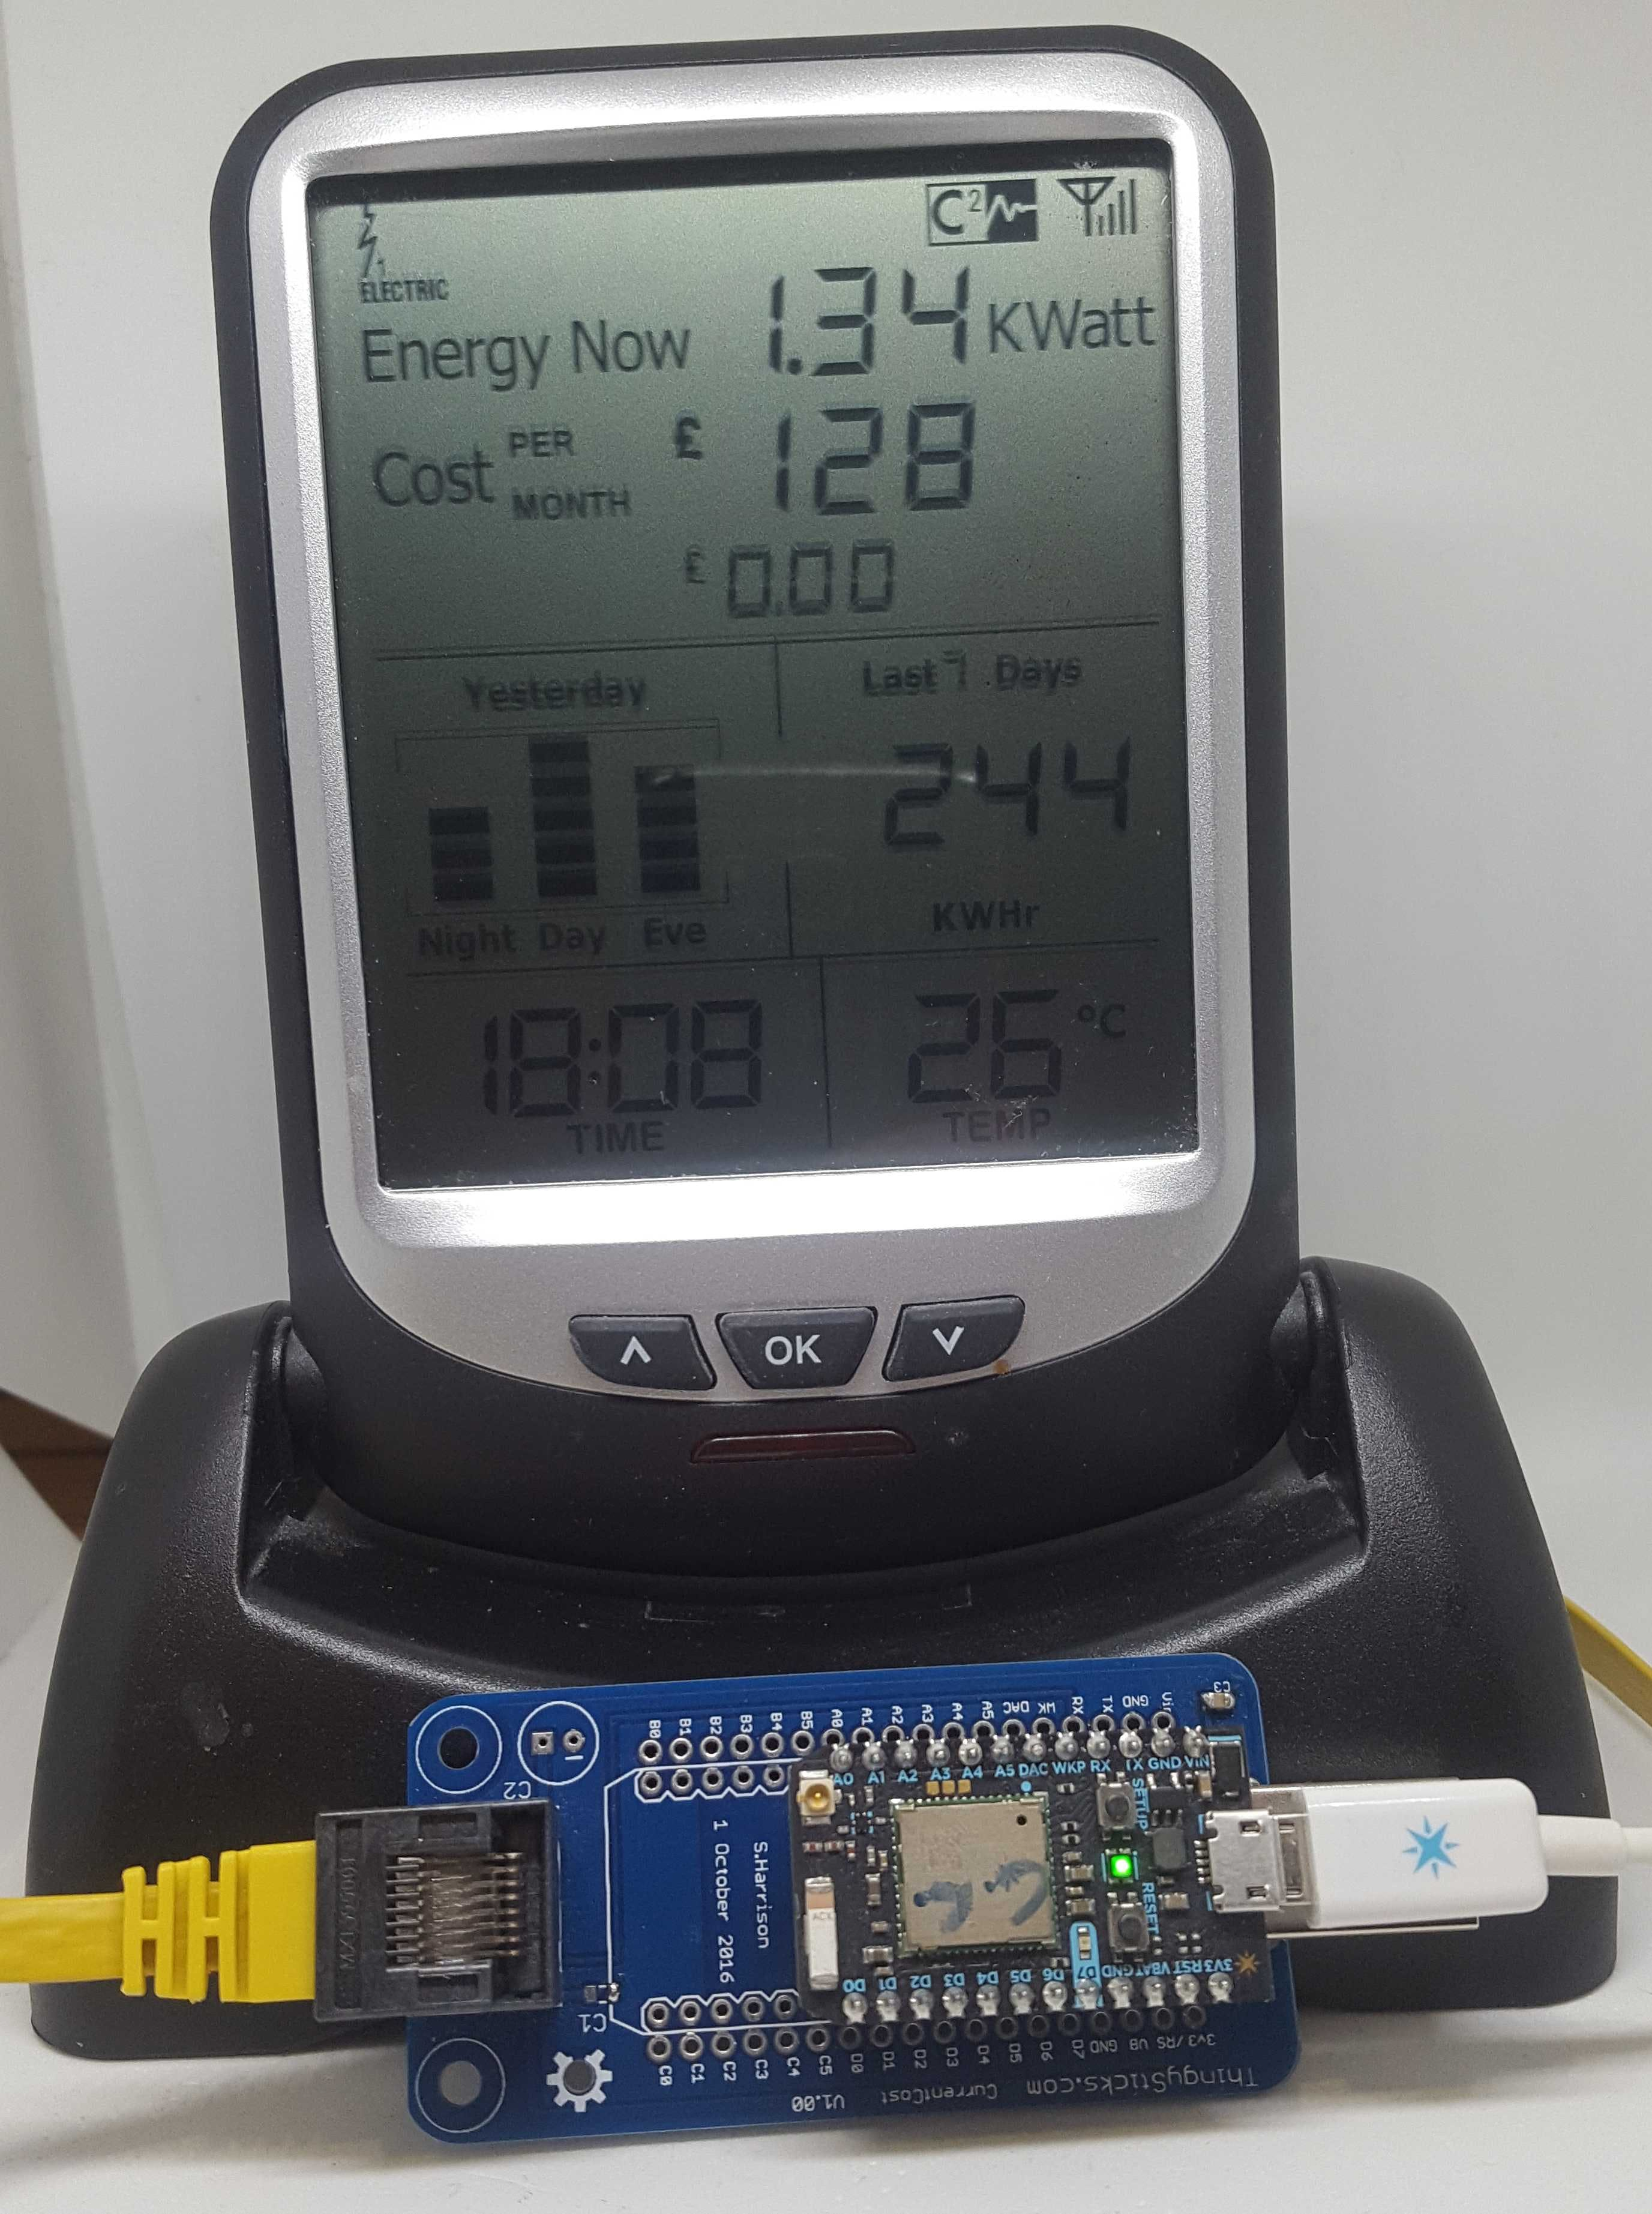 Power monitoring with the ThingyStick Current Cost adaptor and Envir monitor.